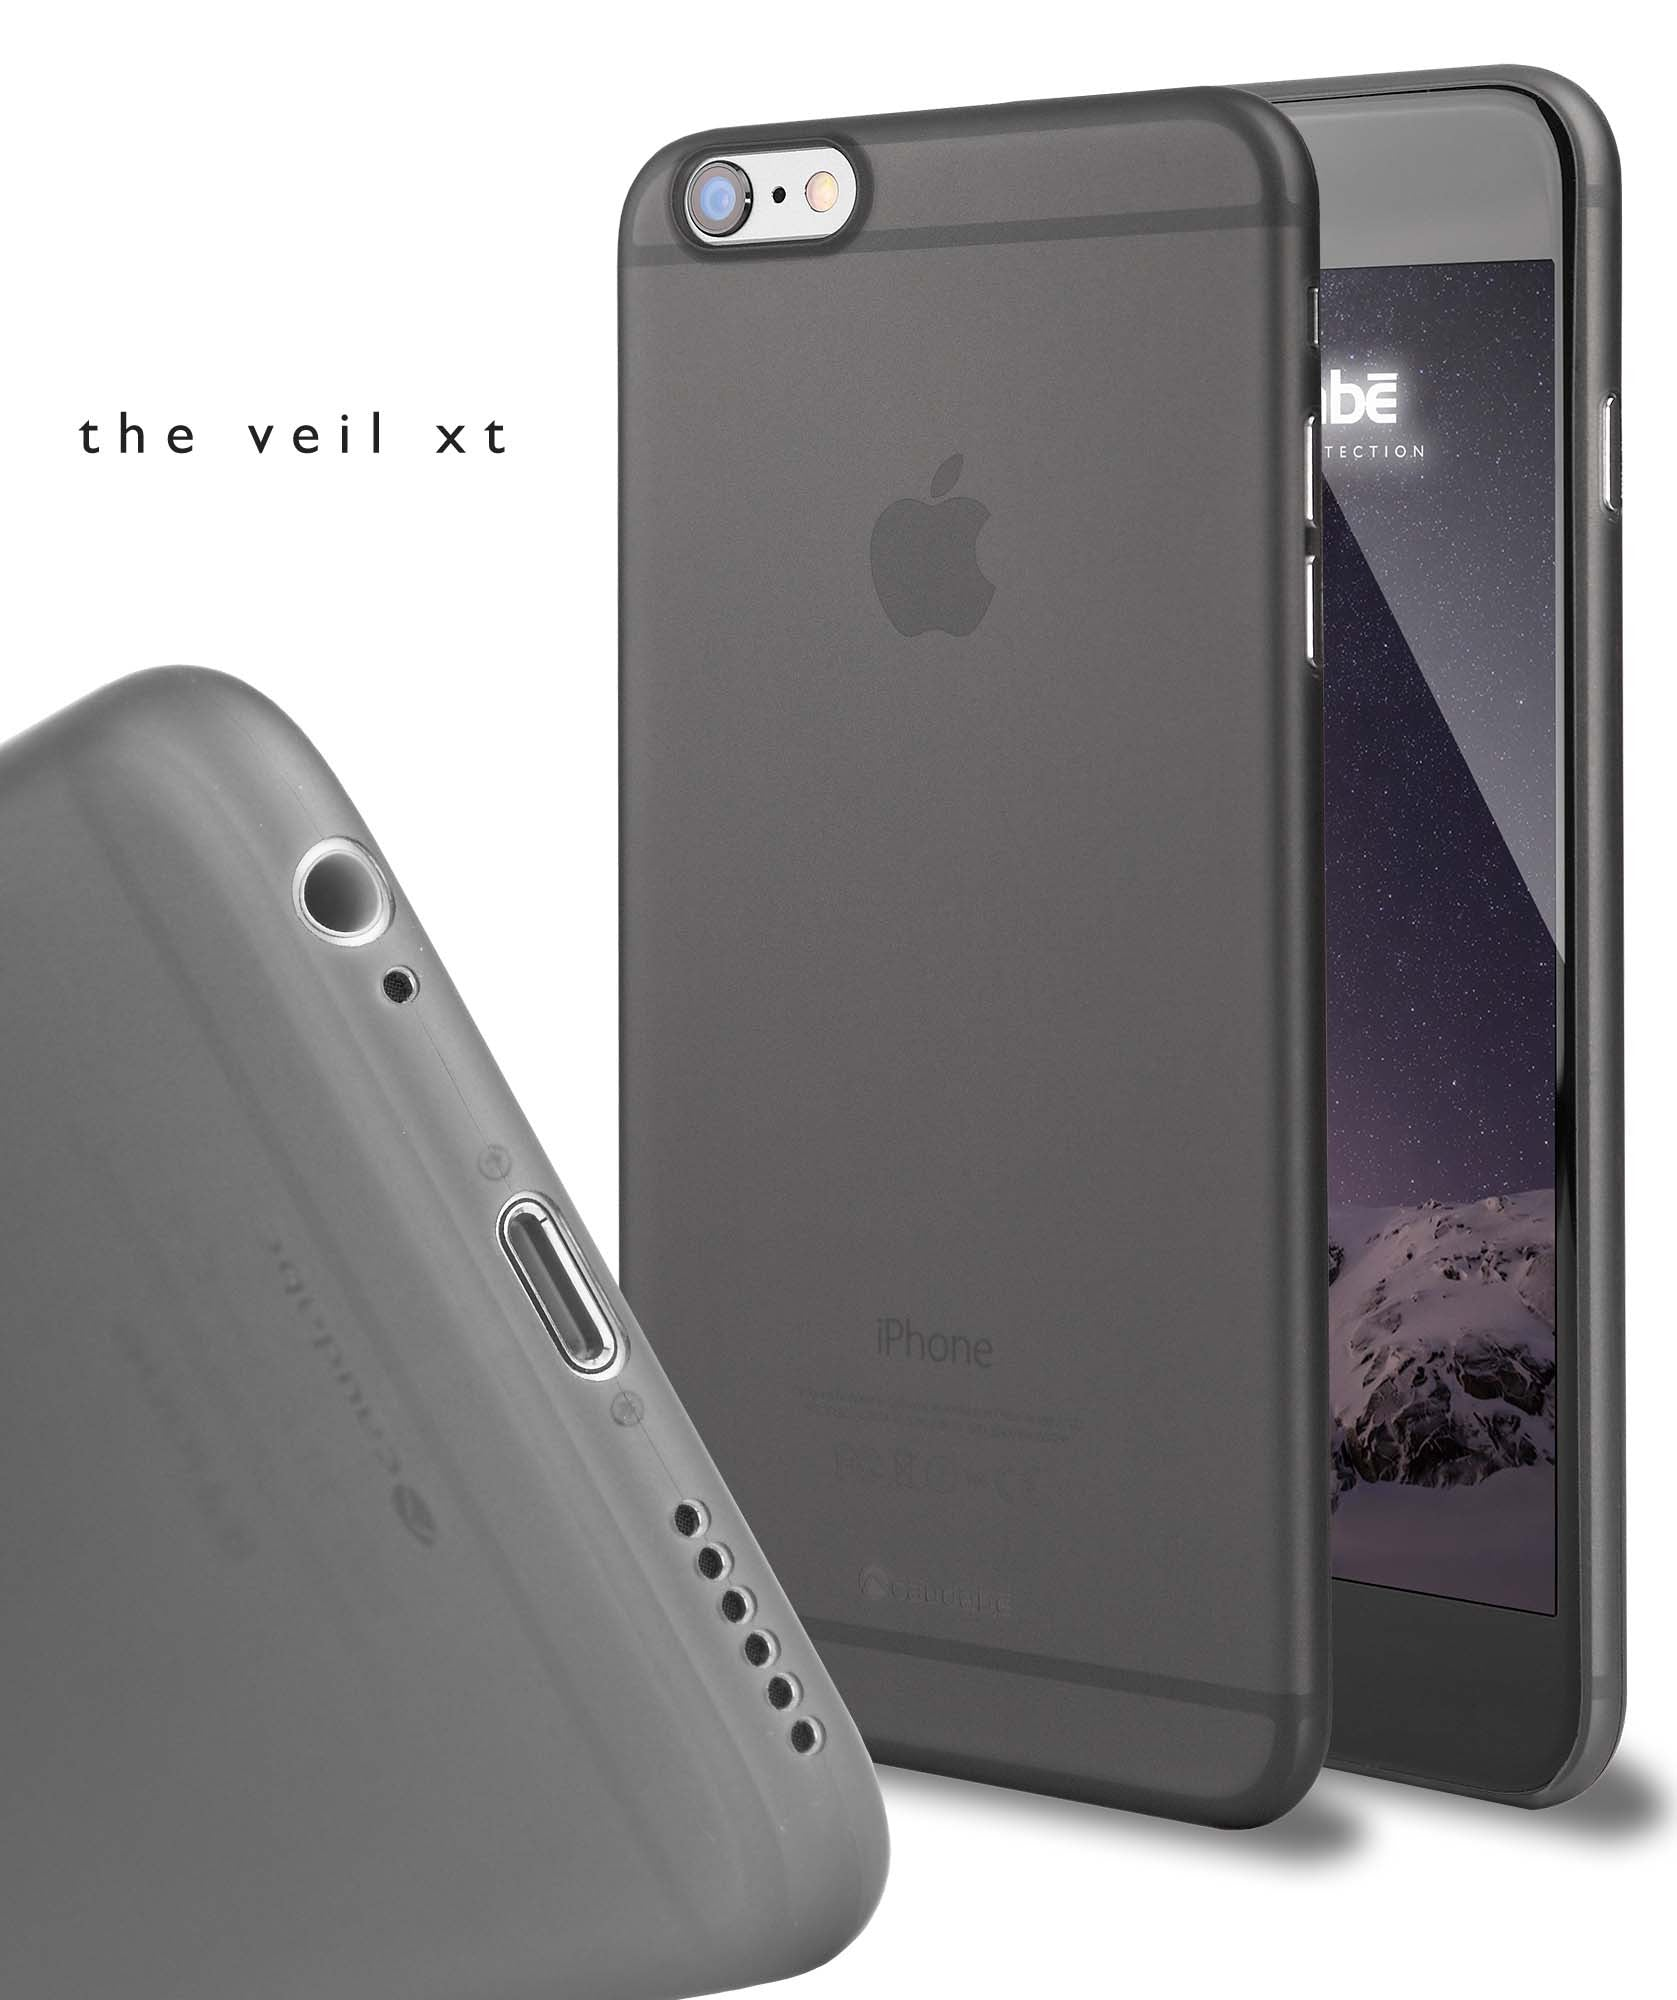 The Veil XT - iPhone 6 Plus — Wisp